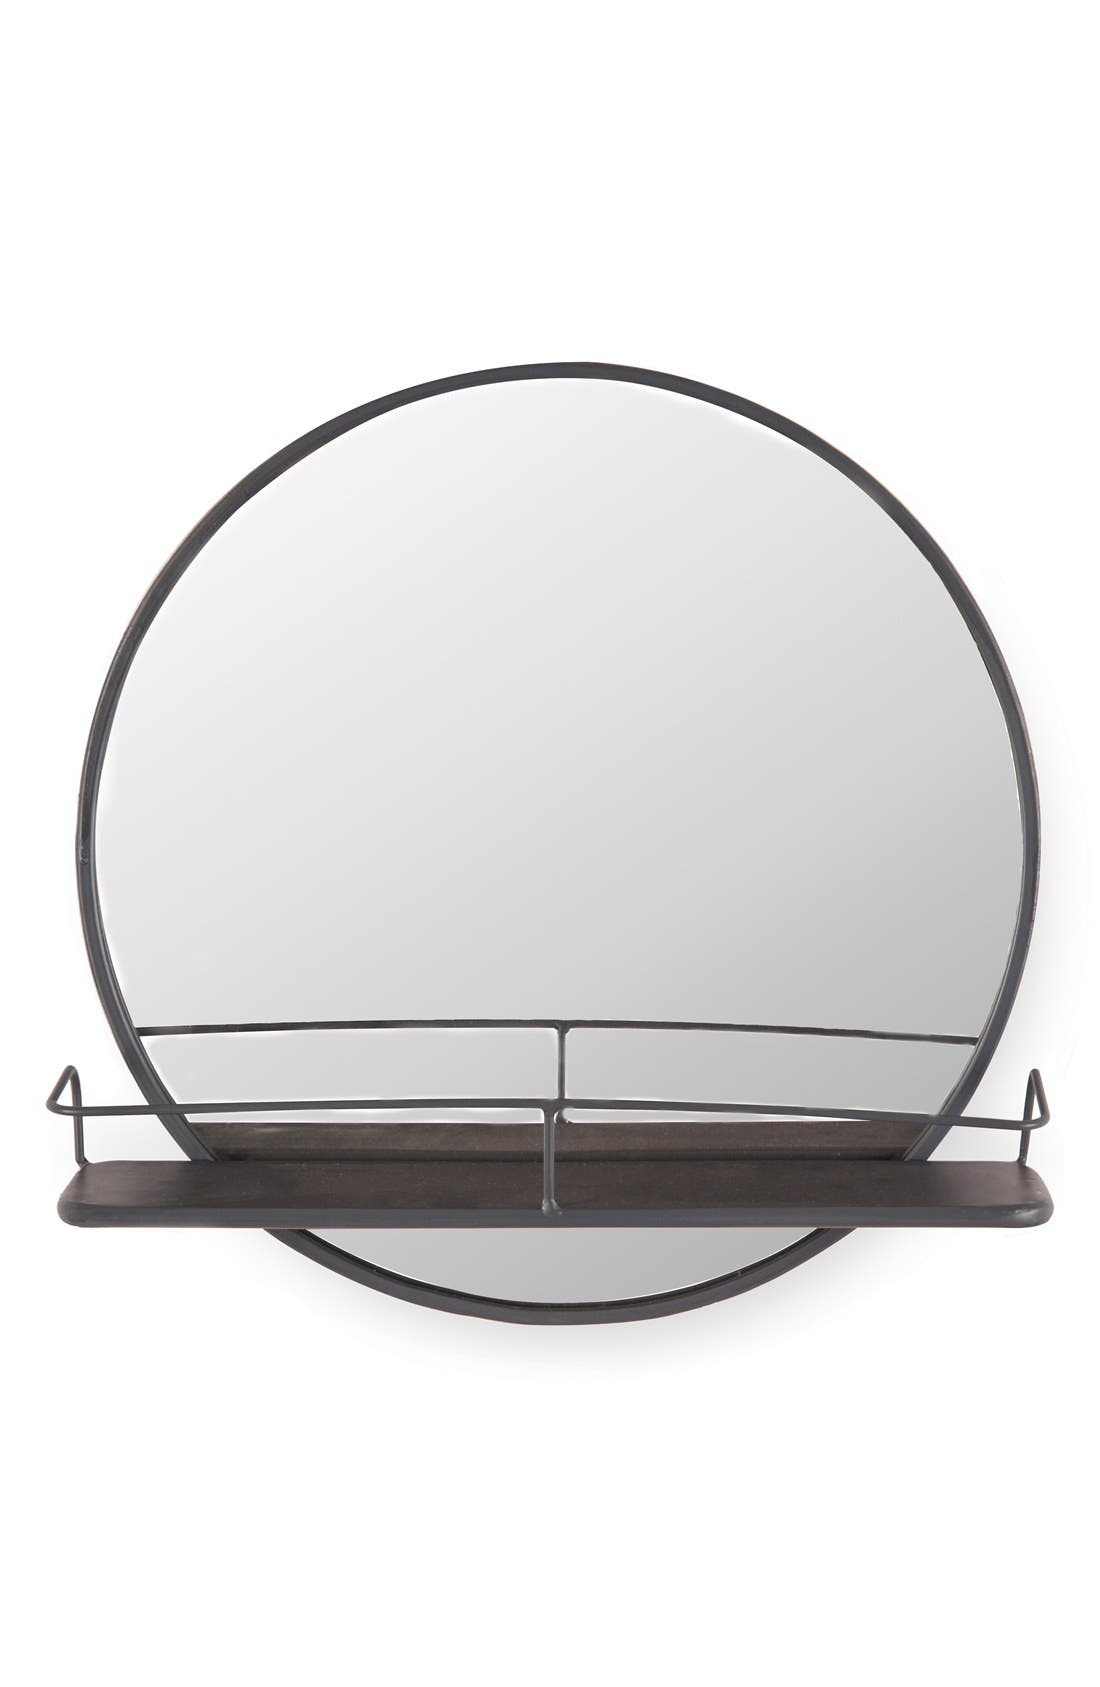 Main Image - Foreside Circle Shelf Mirror